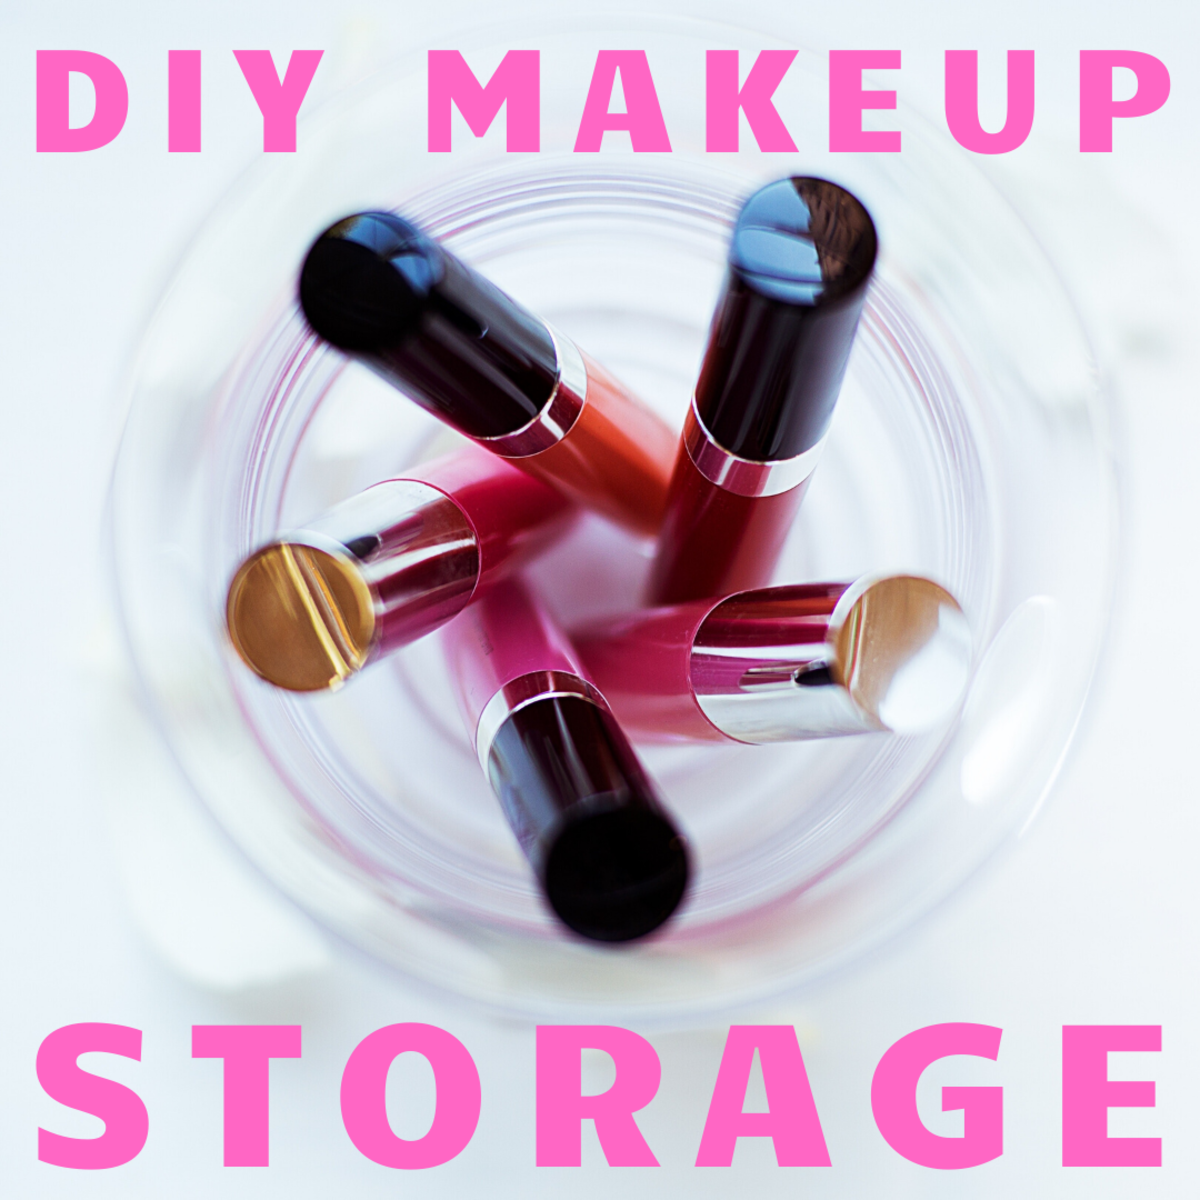 DIY makeup storage solution help you save money and stay organized.